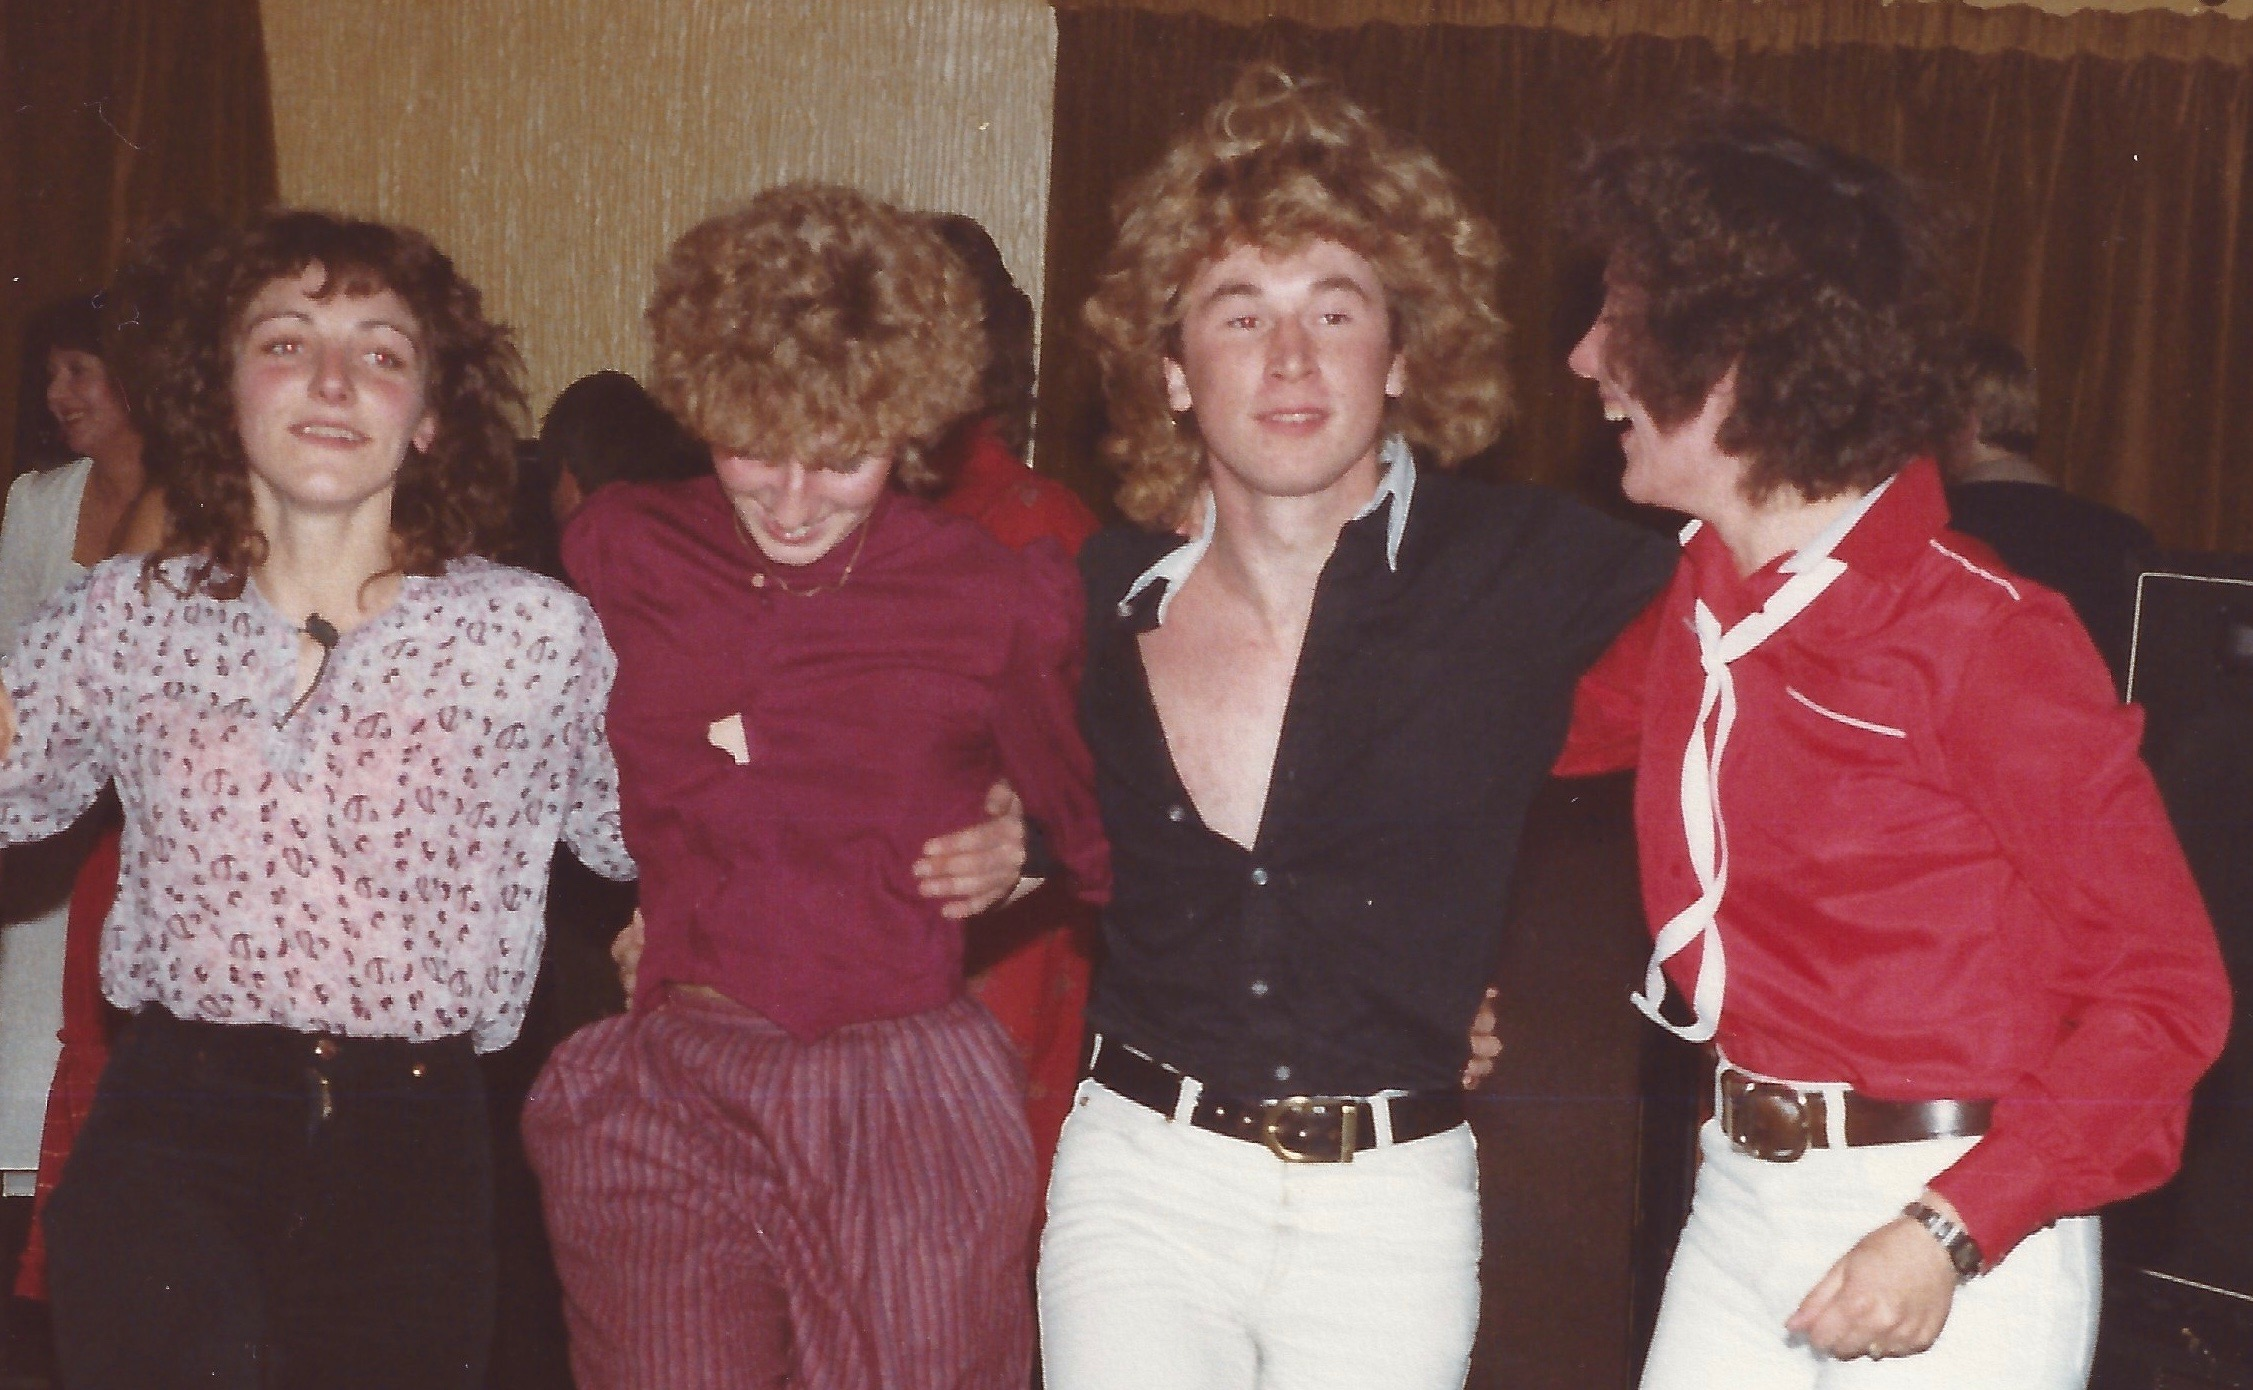 Vince with perm and open shirt dancing with three women